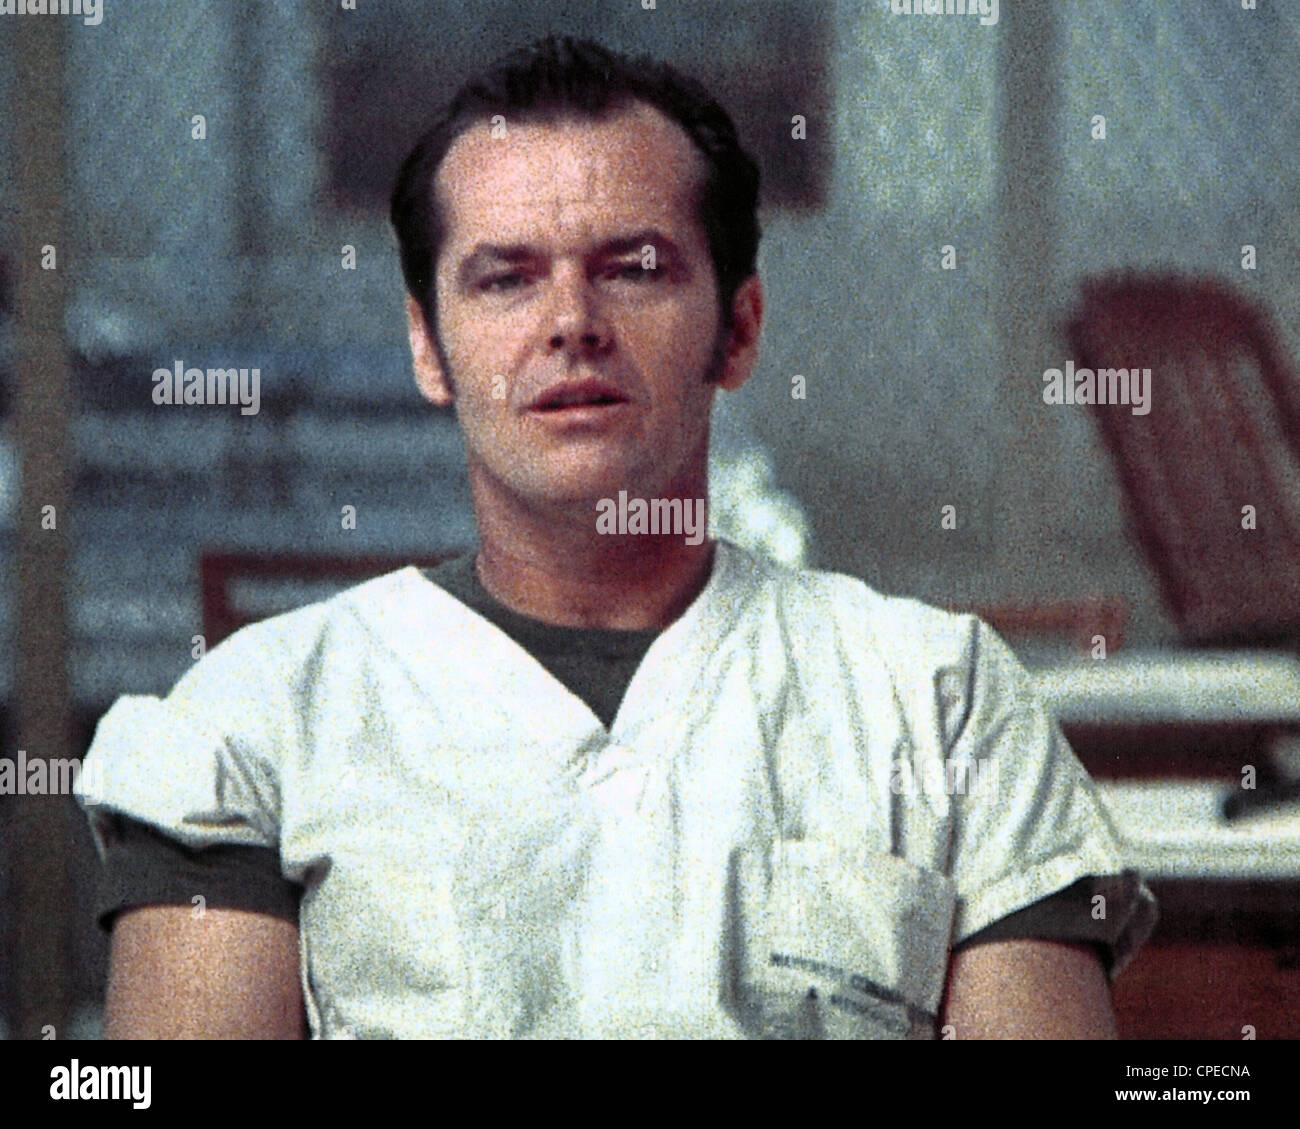 ONE FLEW OVER THE CUCKOO'S NEST 1975 United Artists film with Jack Nicholson Stock Photo